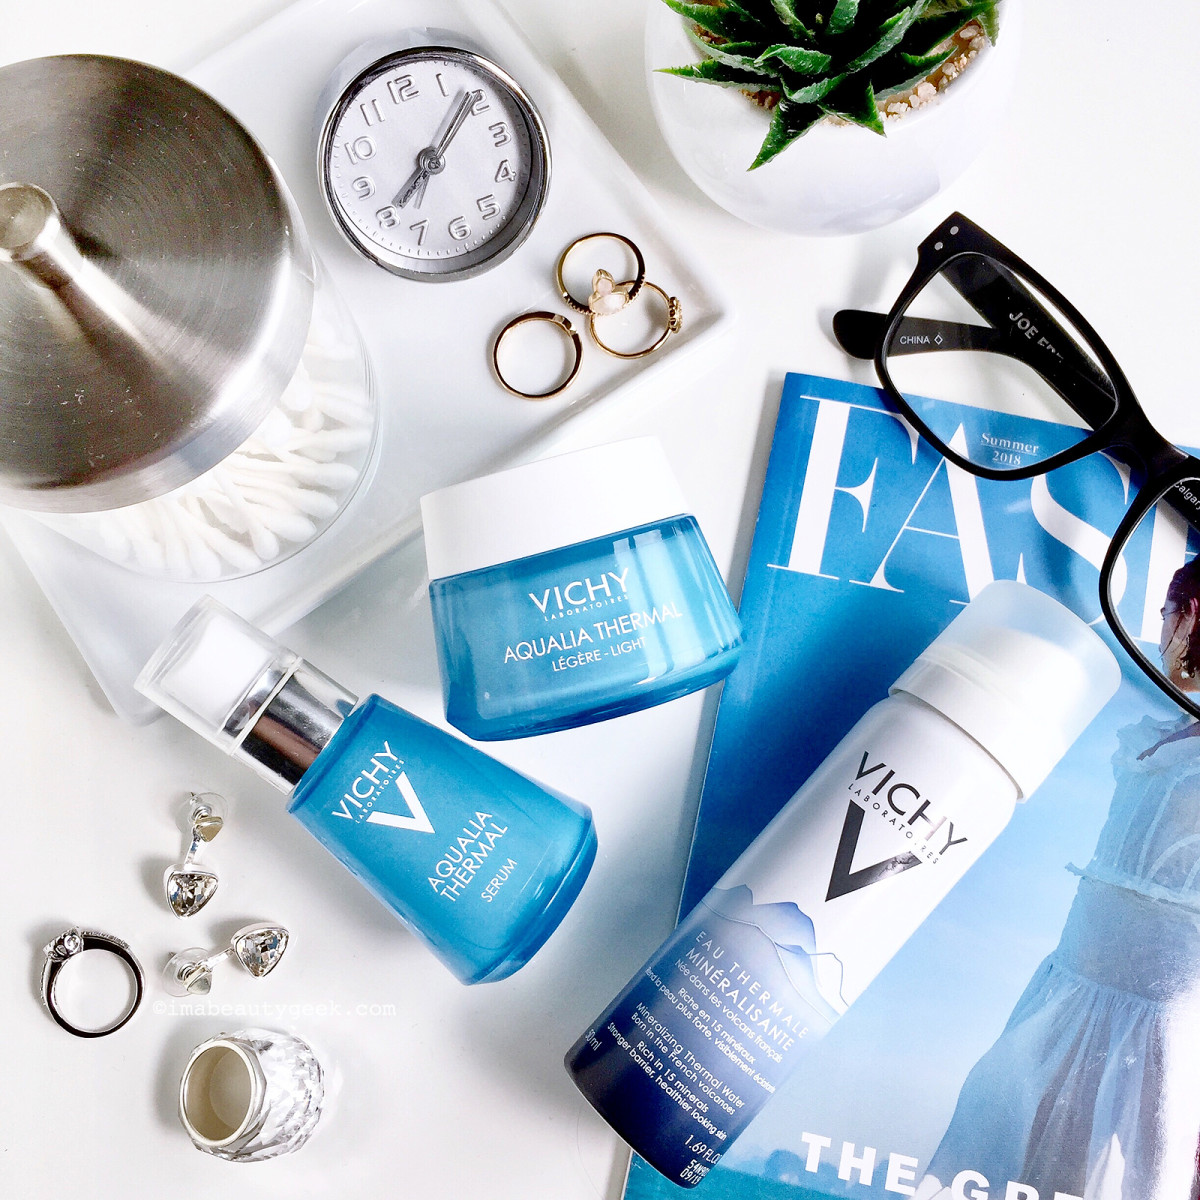 Vichy Aqualia Thermal skincare review 2018 reformulated range